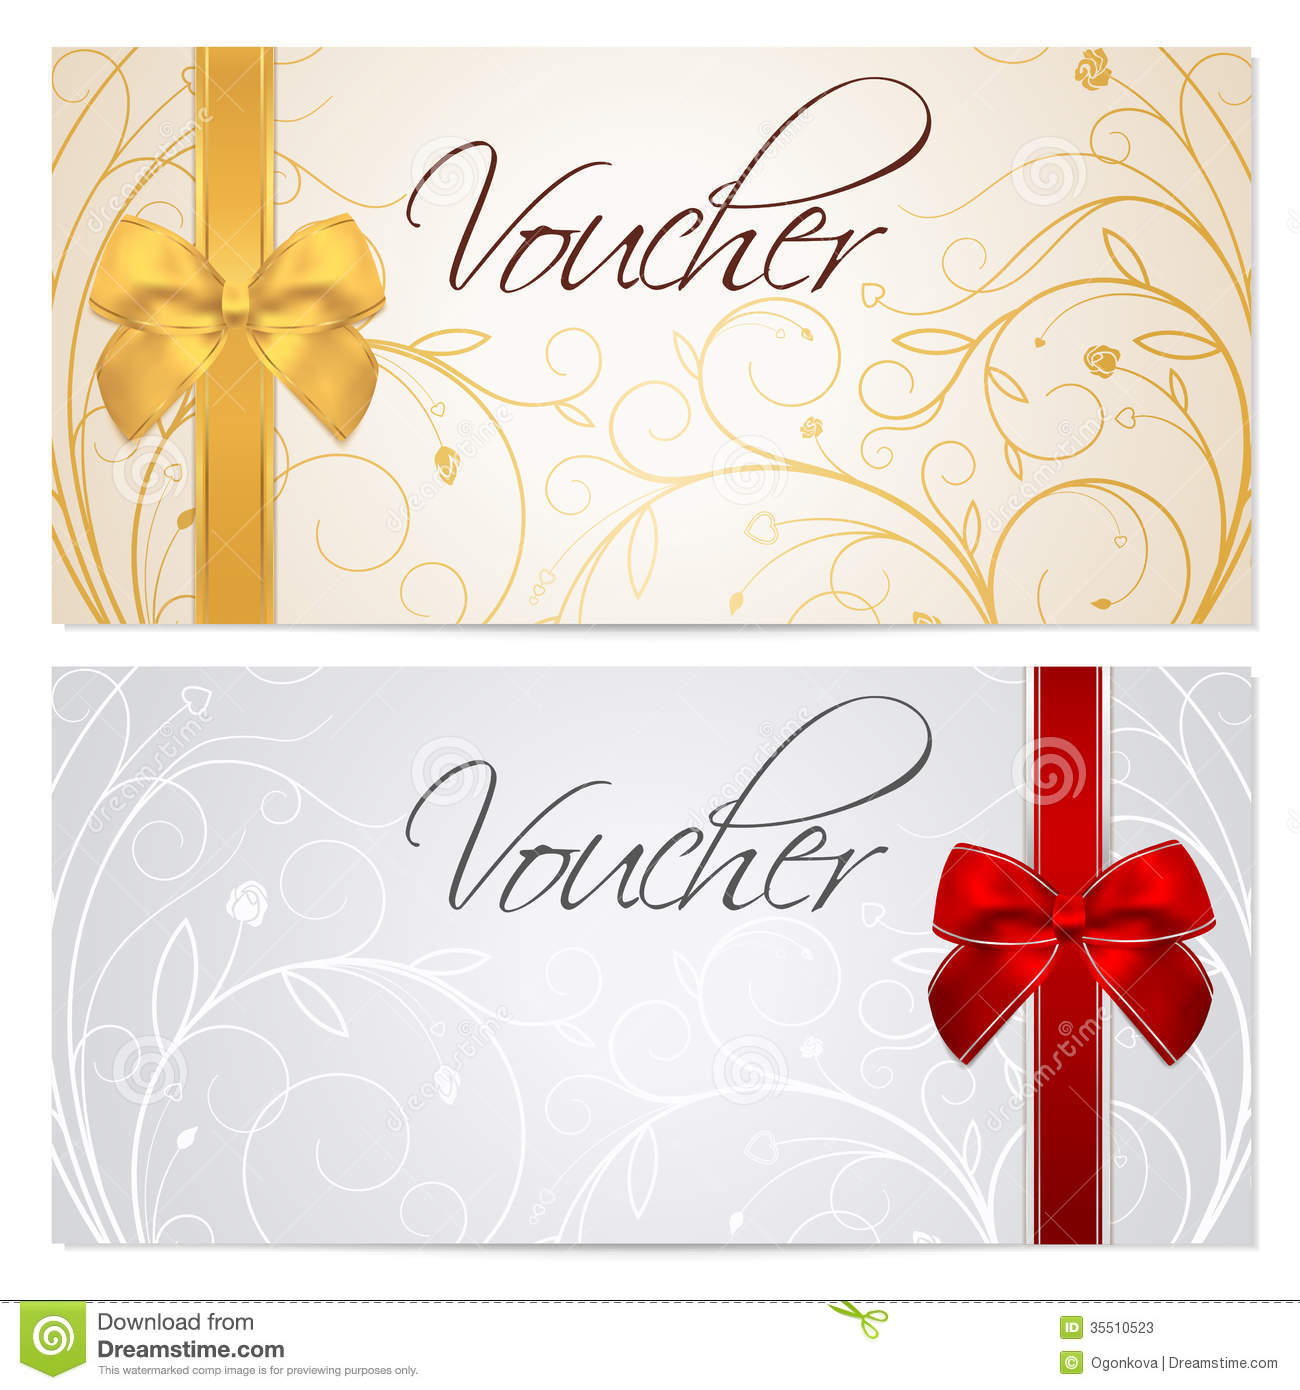 Voucher (Gift Certificate, Coupon) Template. Red B  Print Your Own Voucher